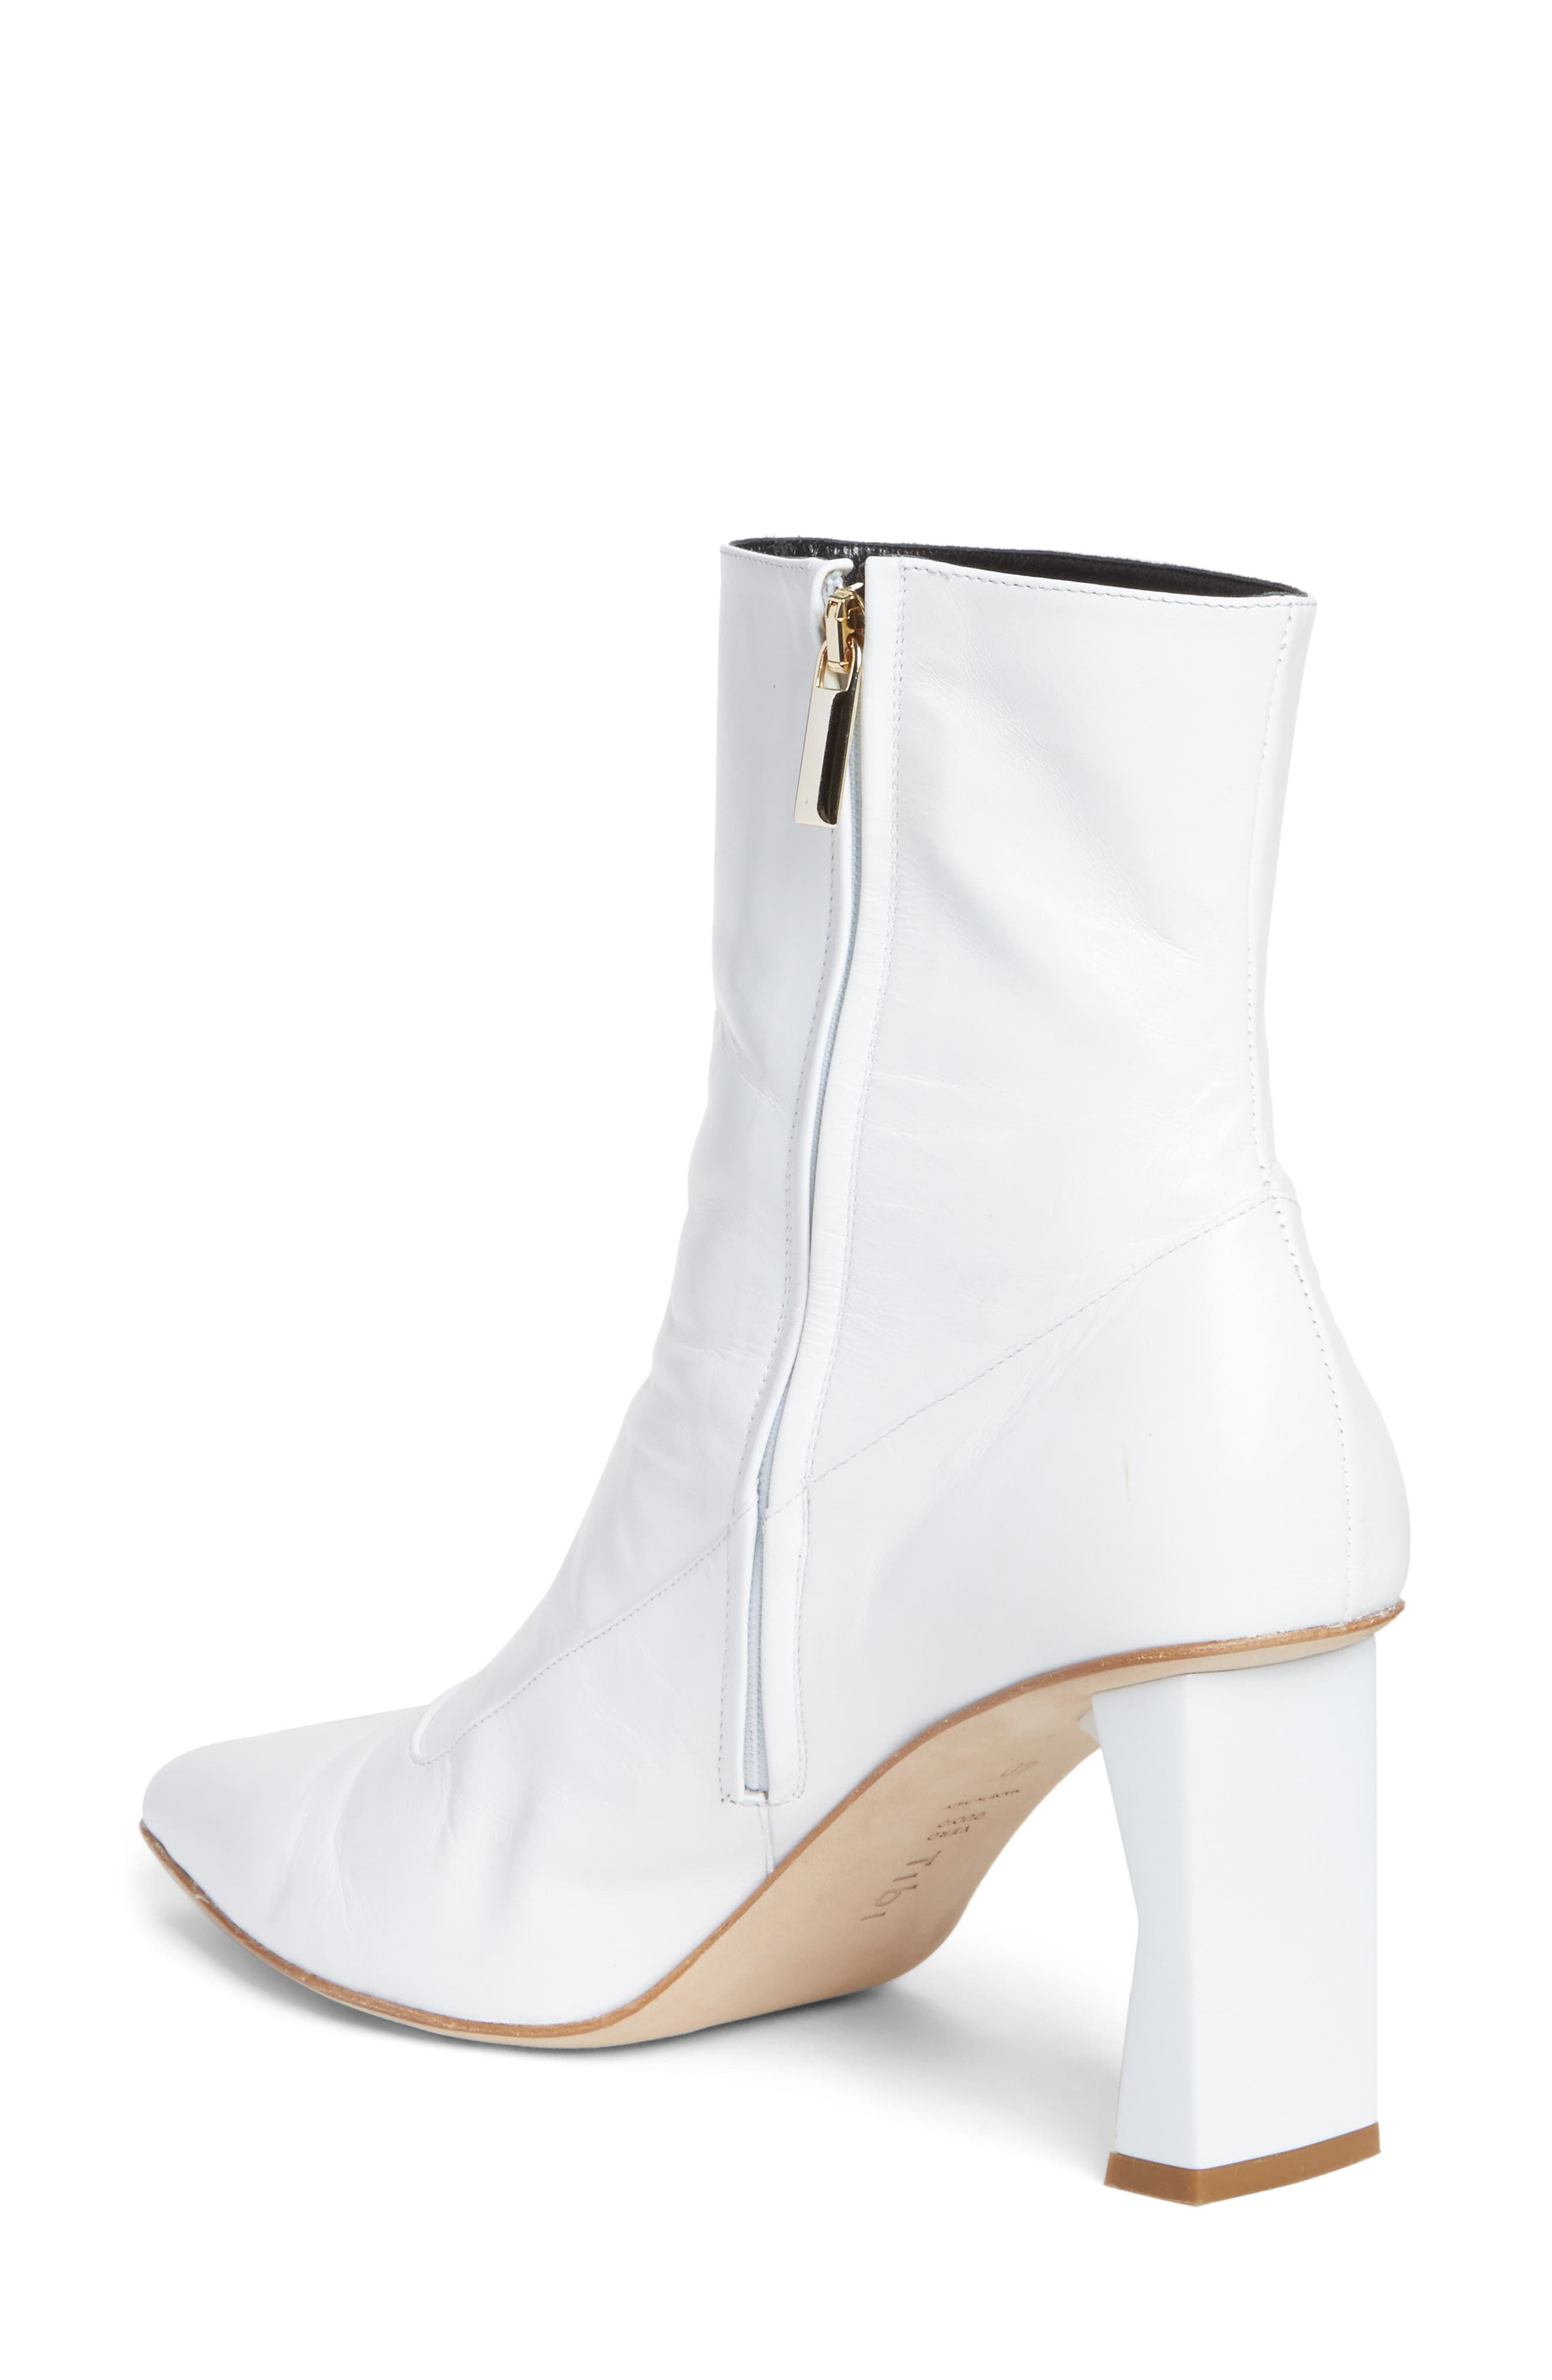 Alexis Pointy Toe Bootie,                             Alternate thumbnail 2, color,                             100